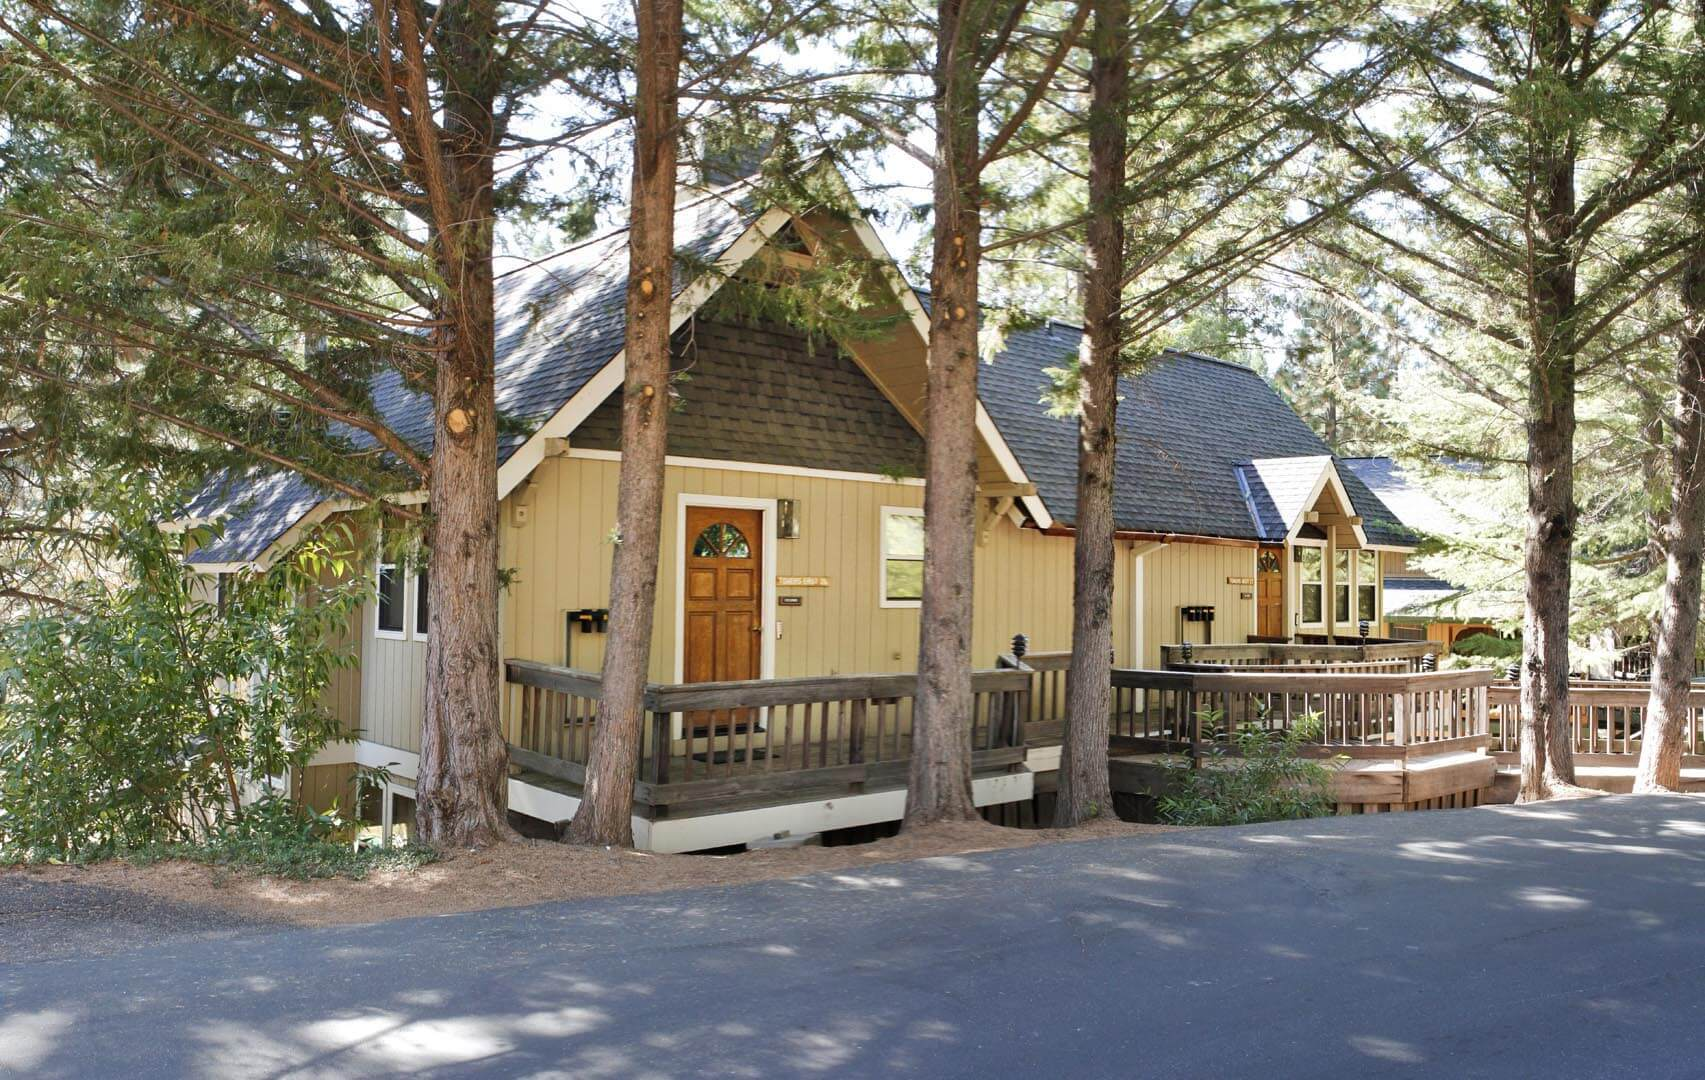 A cozy bedroom with double beds at VRI's Mountain Retreat Resort in California.